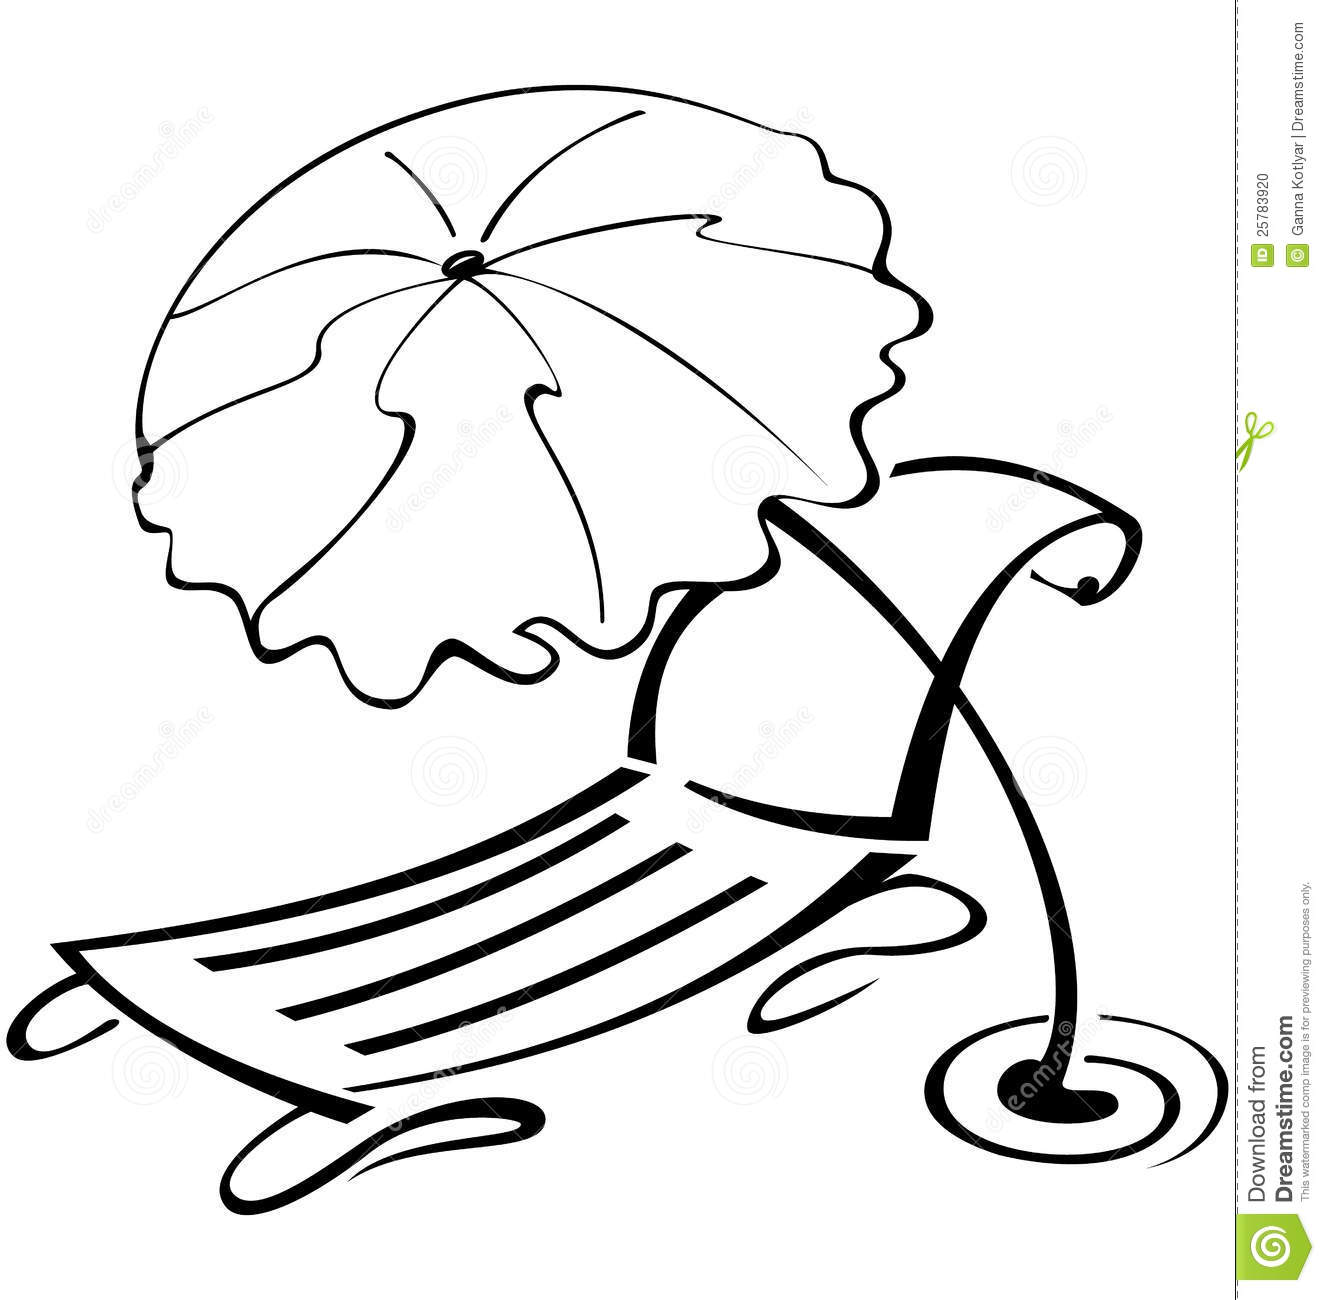 Chair beach umbrella and chair black and white - Black And White Contour Umbrella And Beach Chair Stock Photo